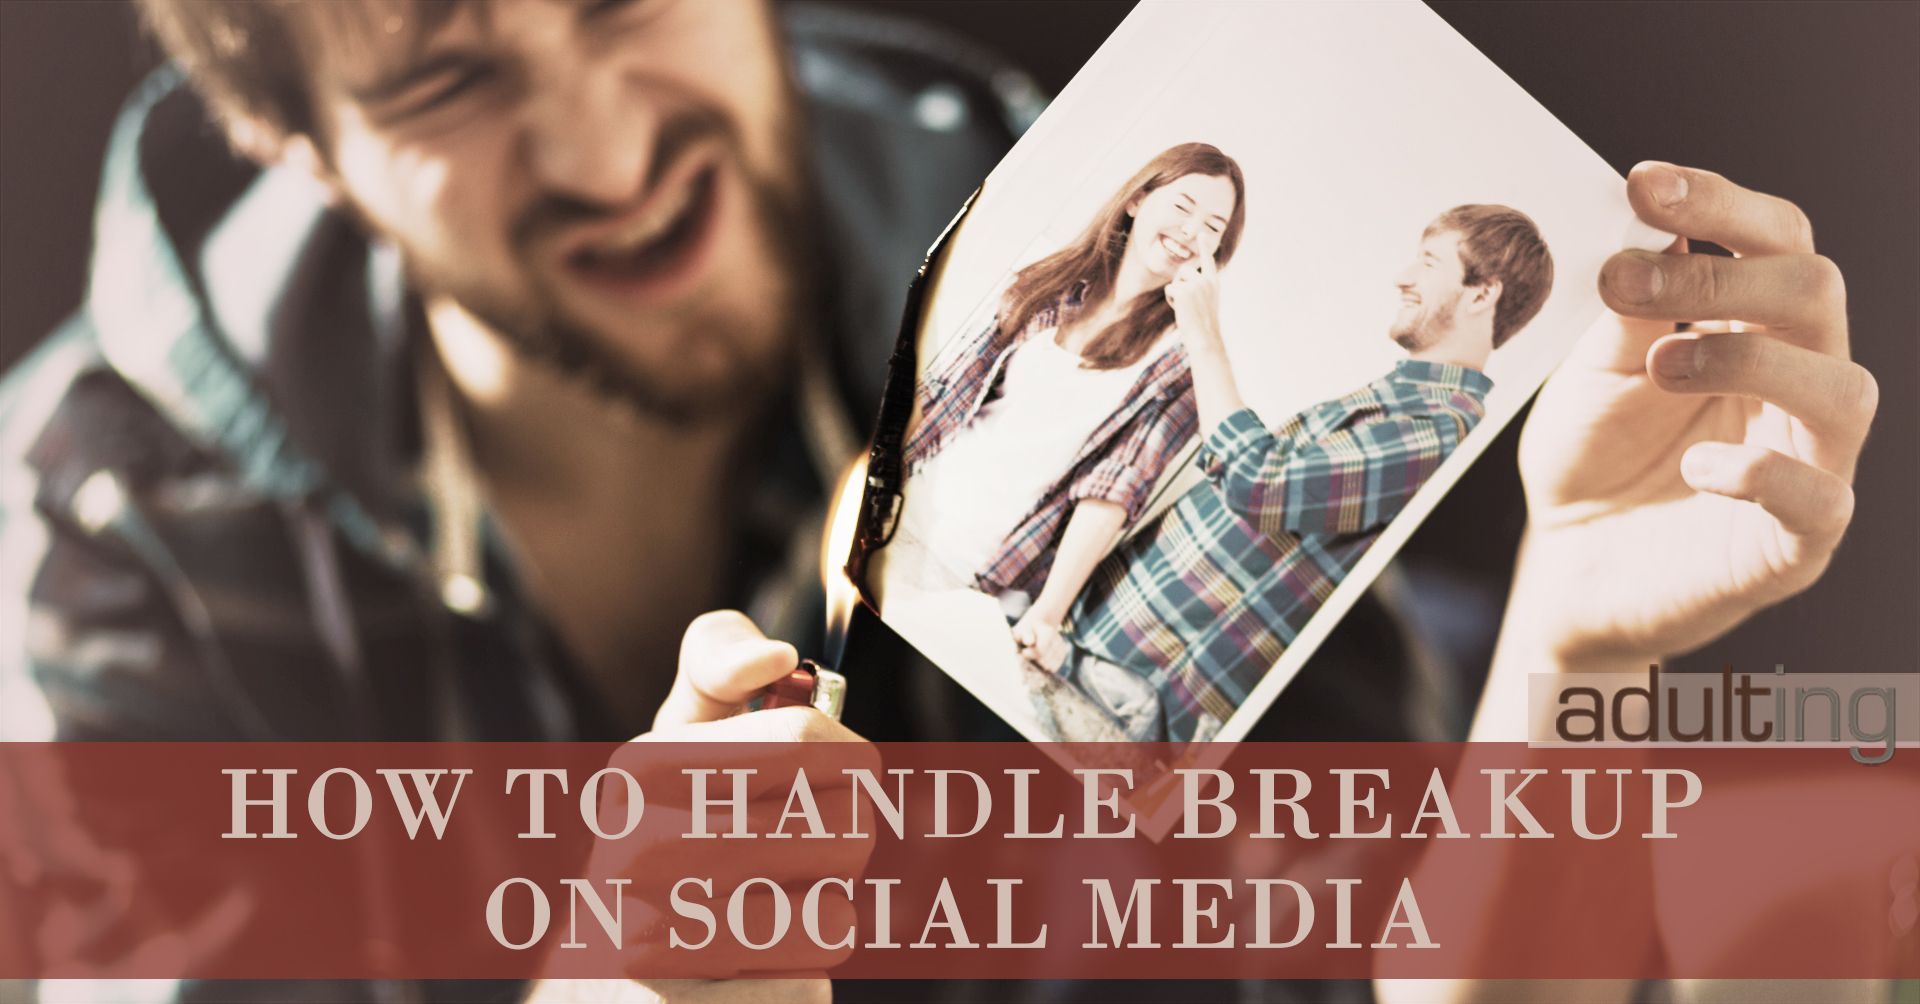 How to Handle Breakup on Social Media